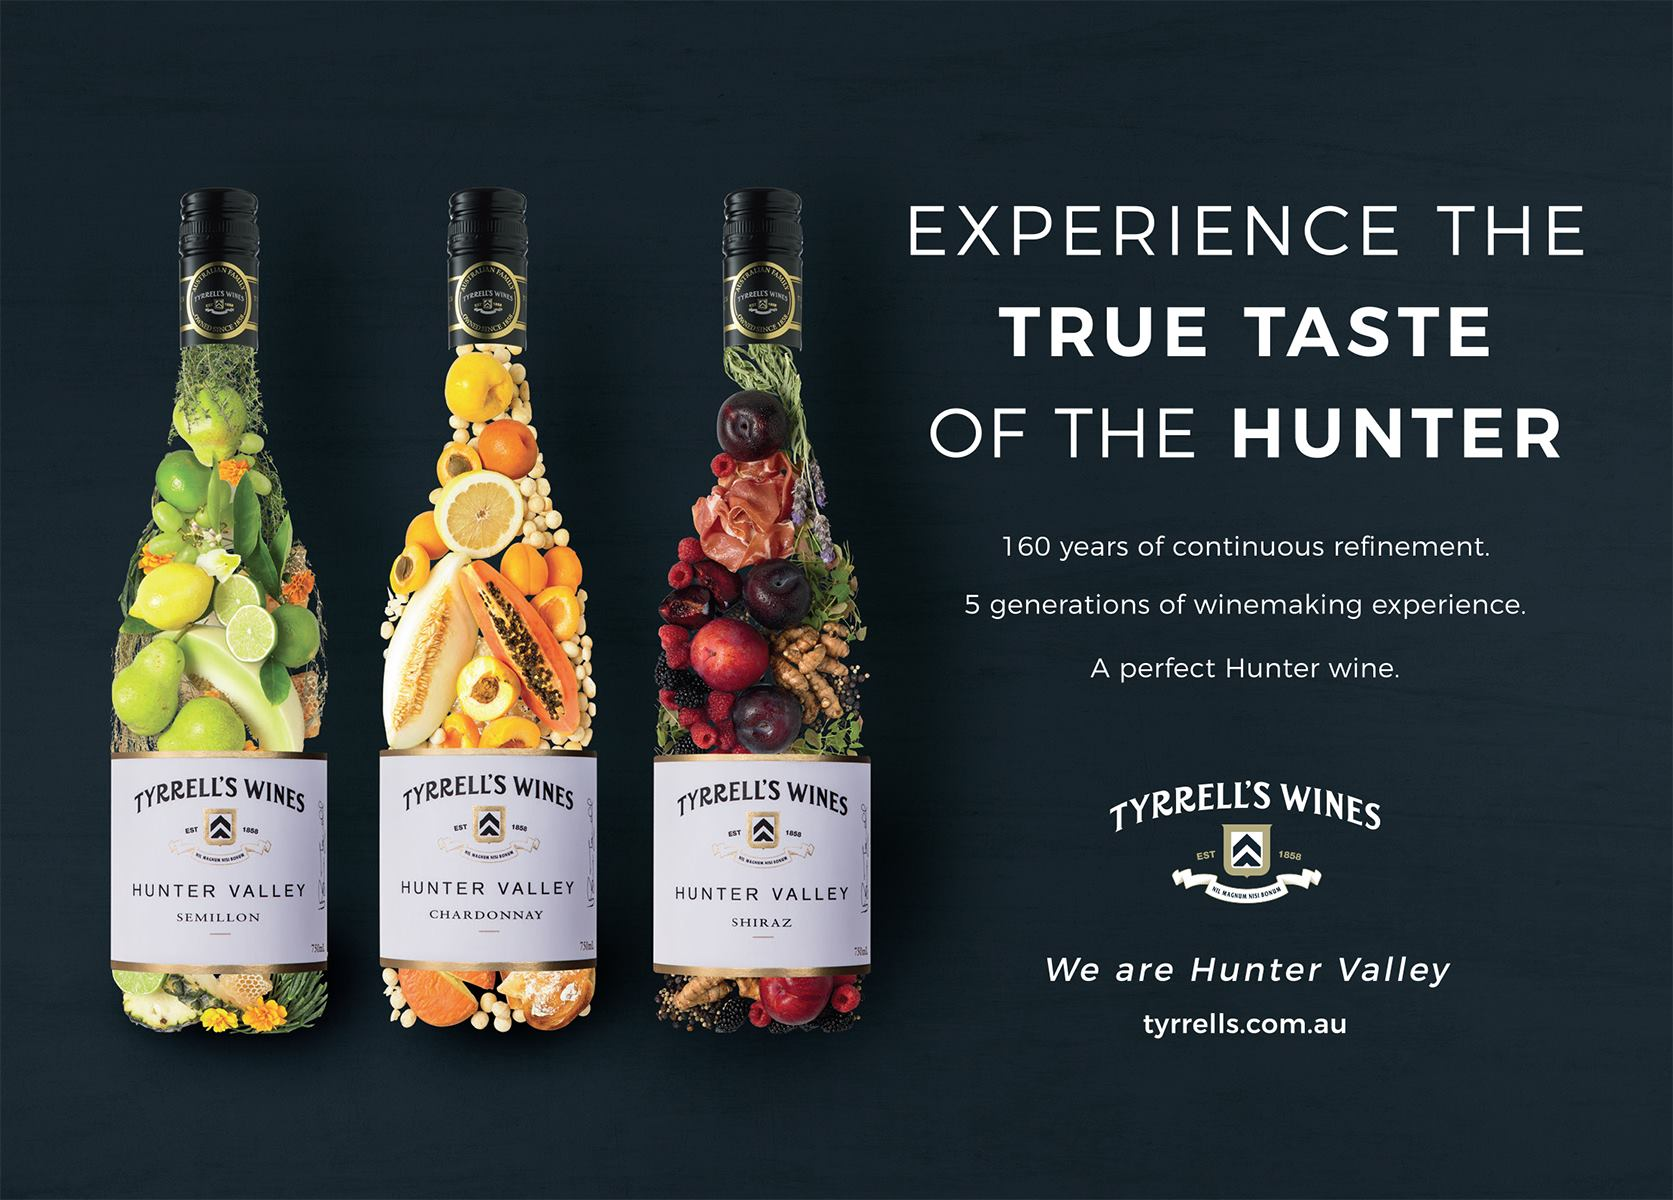 A series of fruits arranged in the shape of a three wine bottles, indicating each bottle's flavour profile, with accompanying text 'Experience the true taste of the hunter'